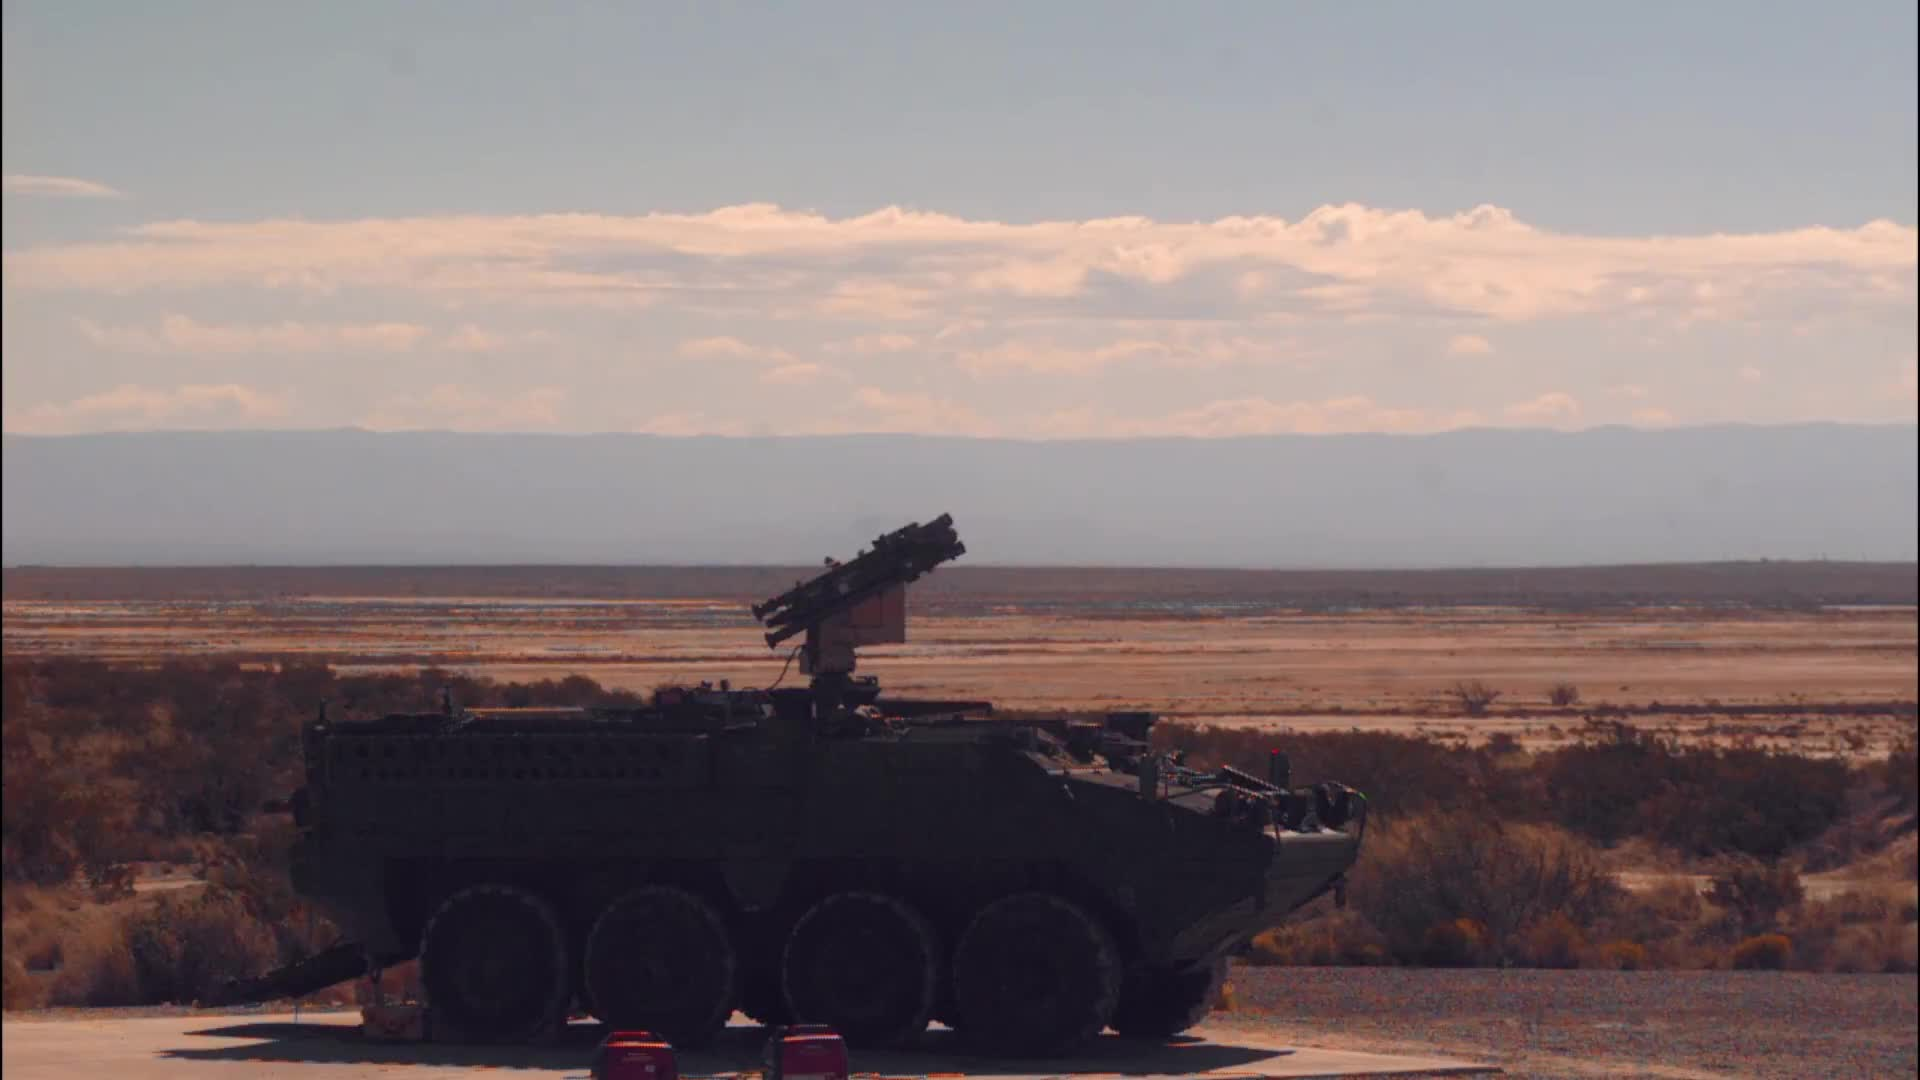 M-SHORAD, WSMR, White Sands Missile Range, militarygfys, Stinger on Stryker Demonstration GIFs